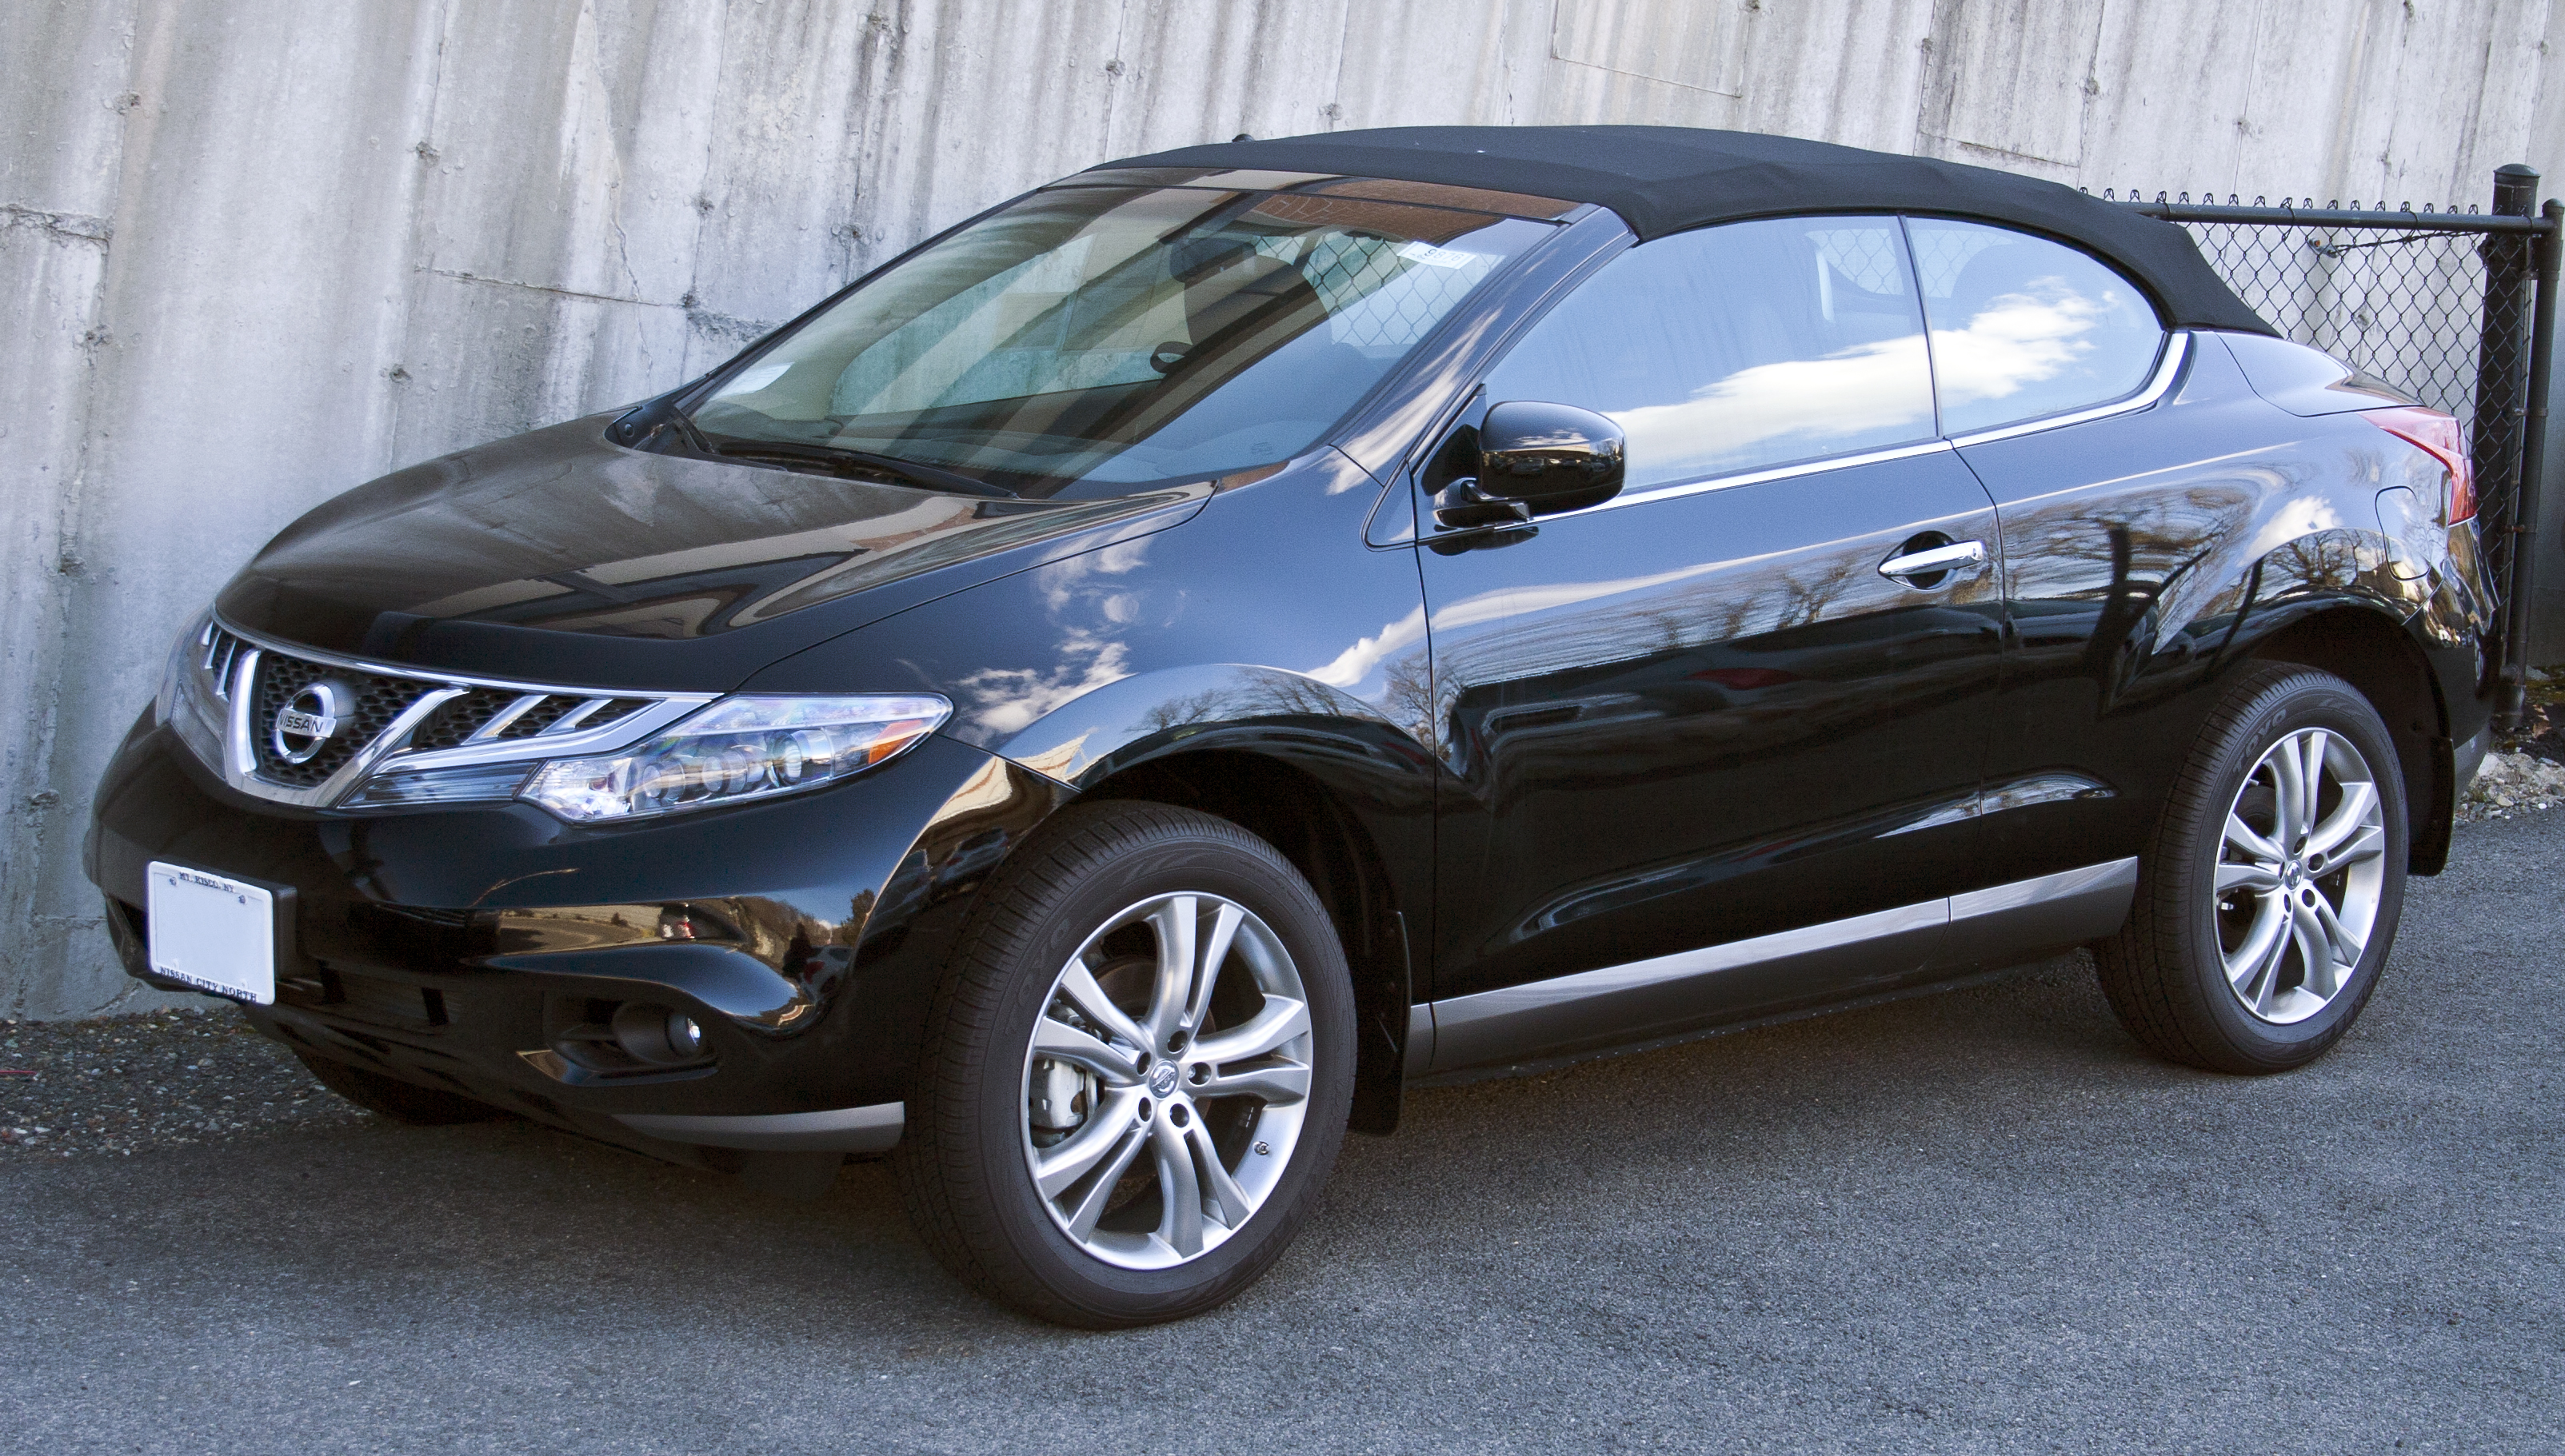 file 2012 nissan murano crosscabriolet top wikimedia commons. Black Bedroom Furniture Sets. Home Design Ideas